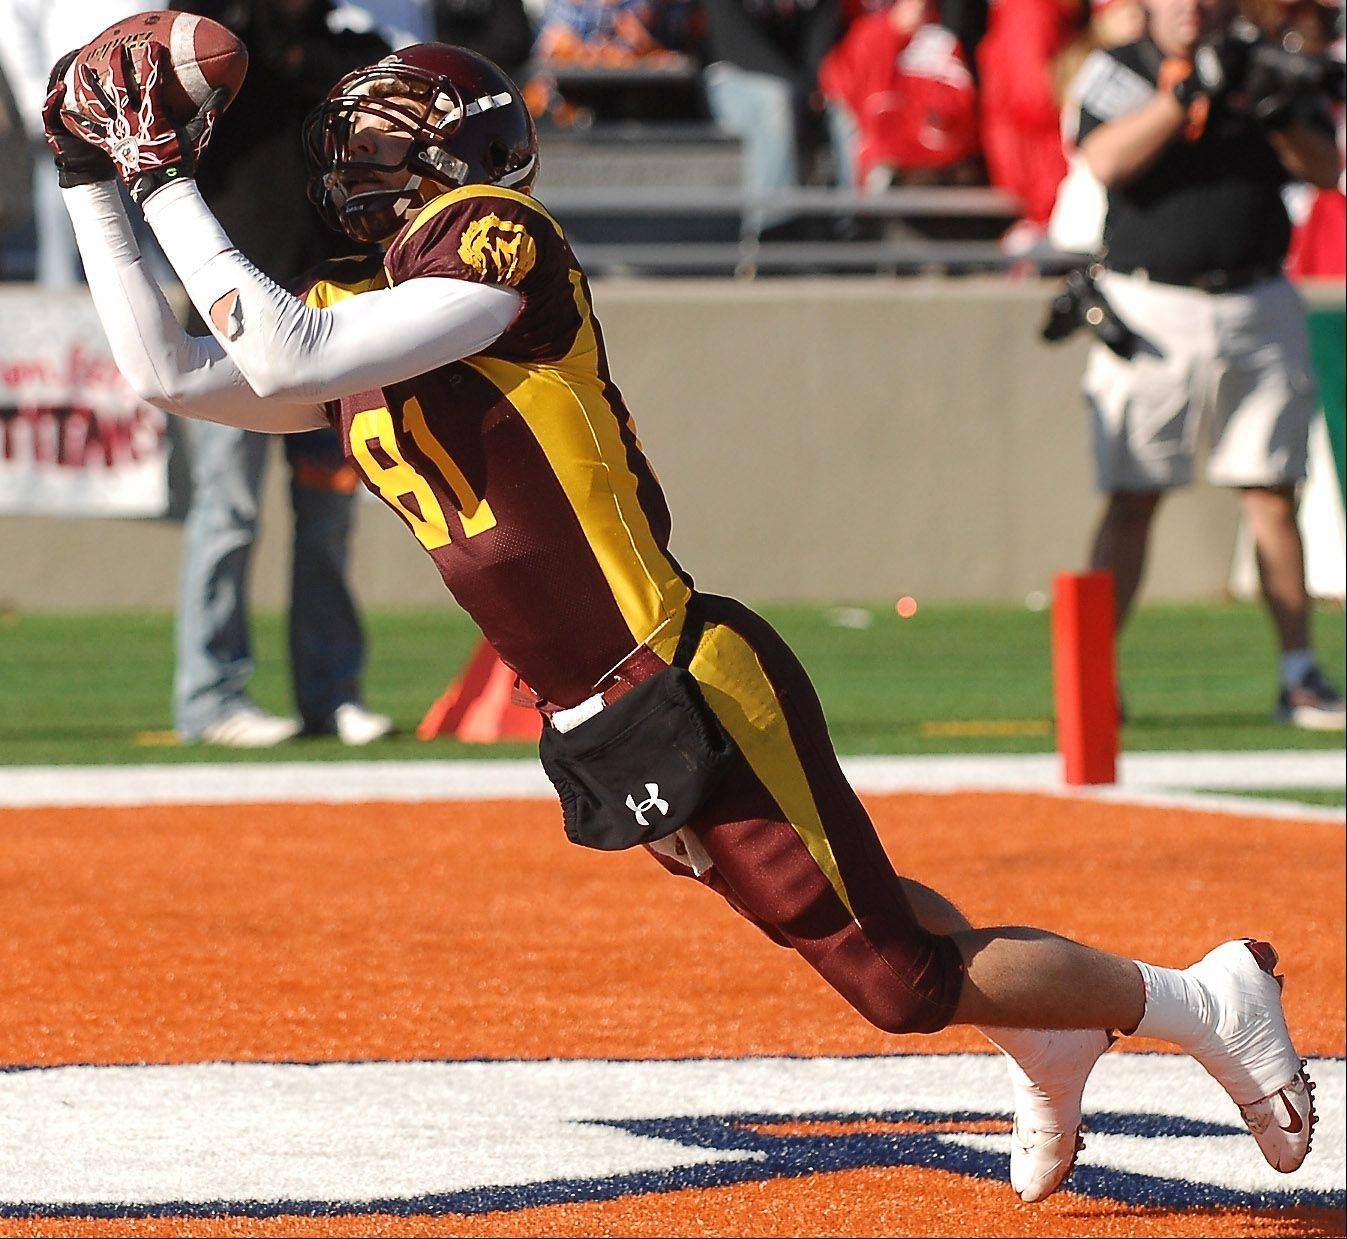 Rick West/rwest@dailyherald.com ¬ Montini's Jordan Westerkamp makes his second touchdown catch of the day against Chatham Glenwood during the Class 5A state championsip in Champaign Saturday.